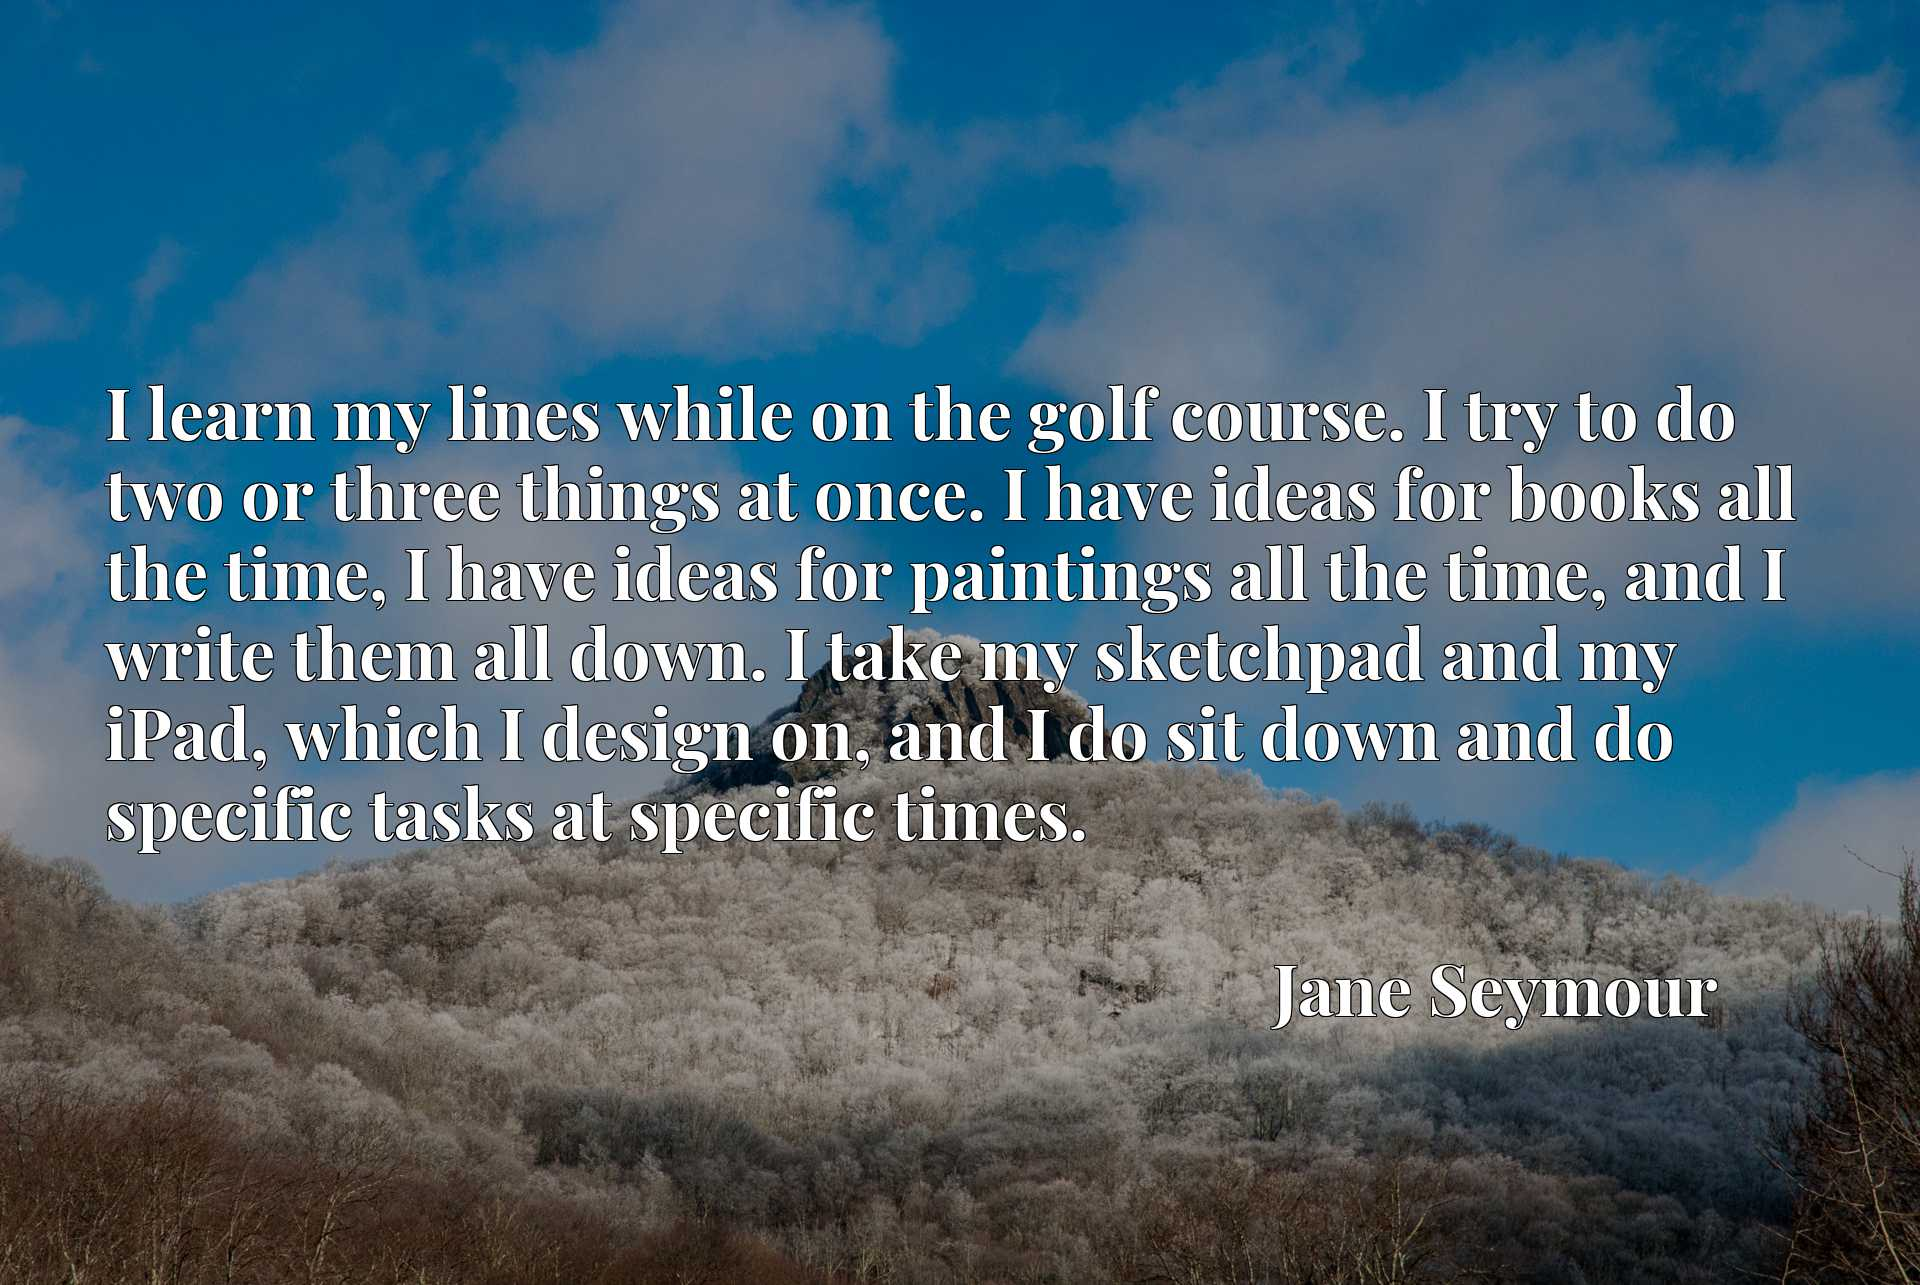 I learn my lines while on the golf course. I try to do two or three things at once. I have ideas for books all the time, I have ideas for paintings all the time, and I write them all down. I take my sketchpad and my iPad, which I design on, and I do sit down and do specific tasks at specific times.